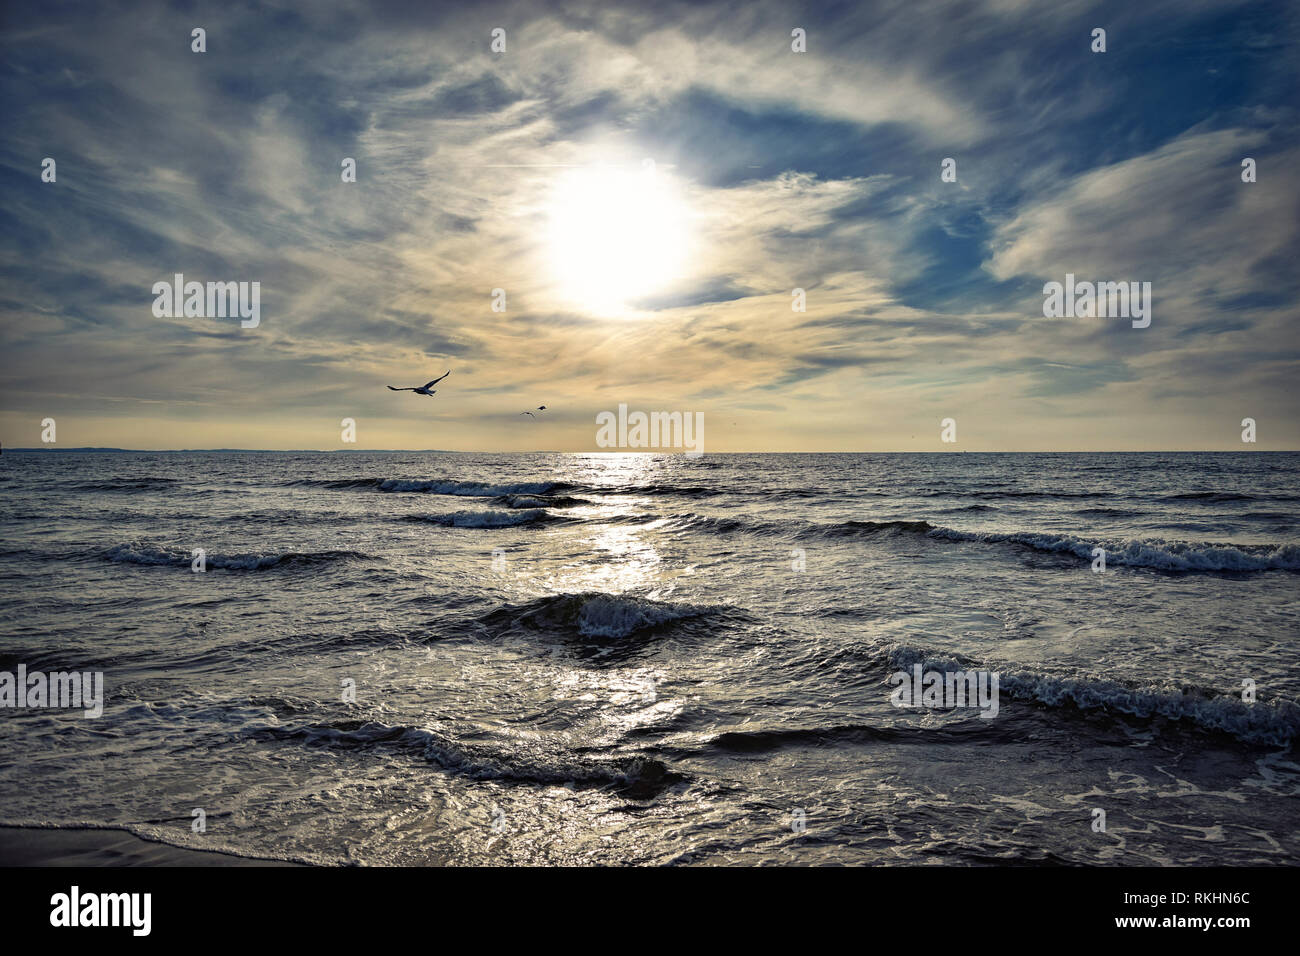 Sunset and a picturesquely dramatic cloudy sky over the stormy sea - Stock Image